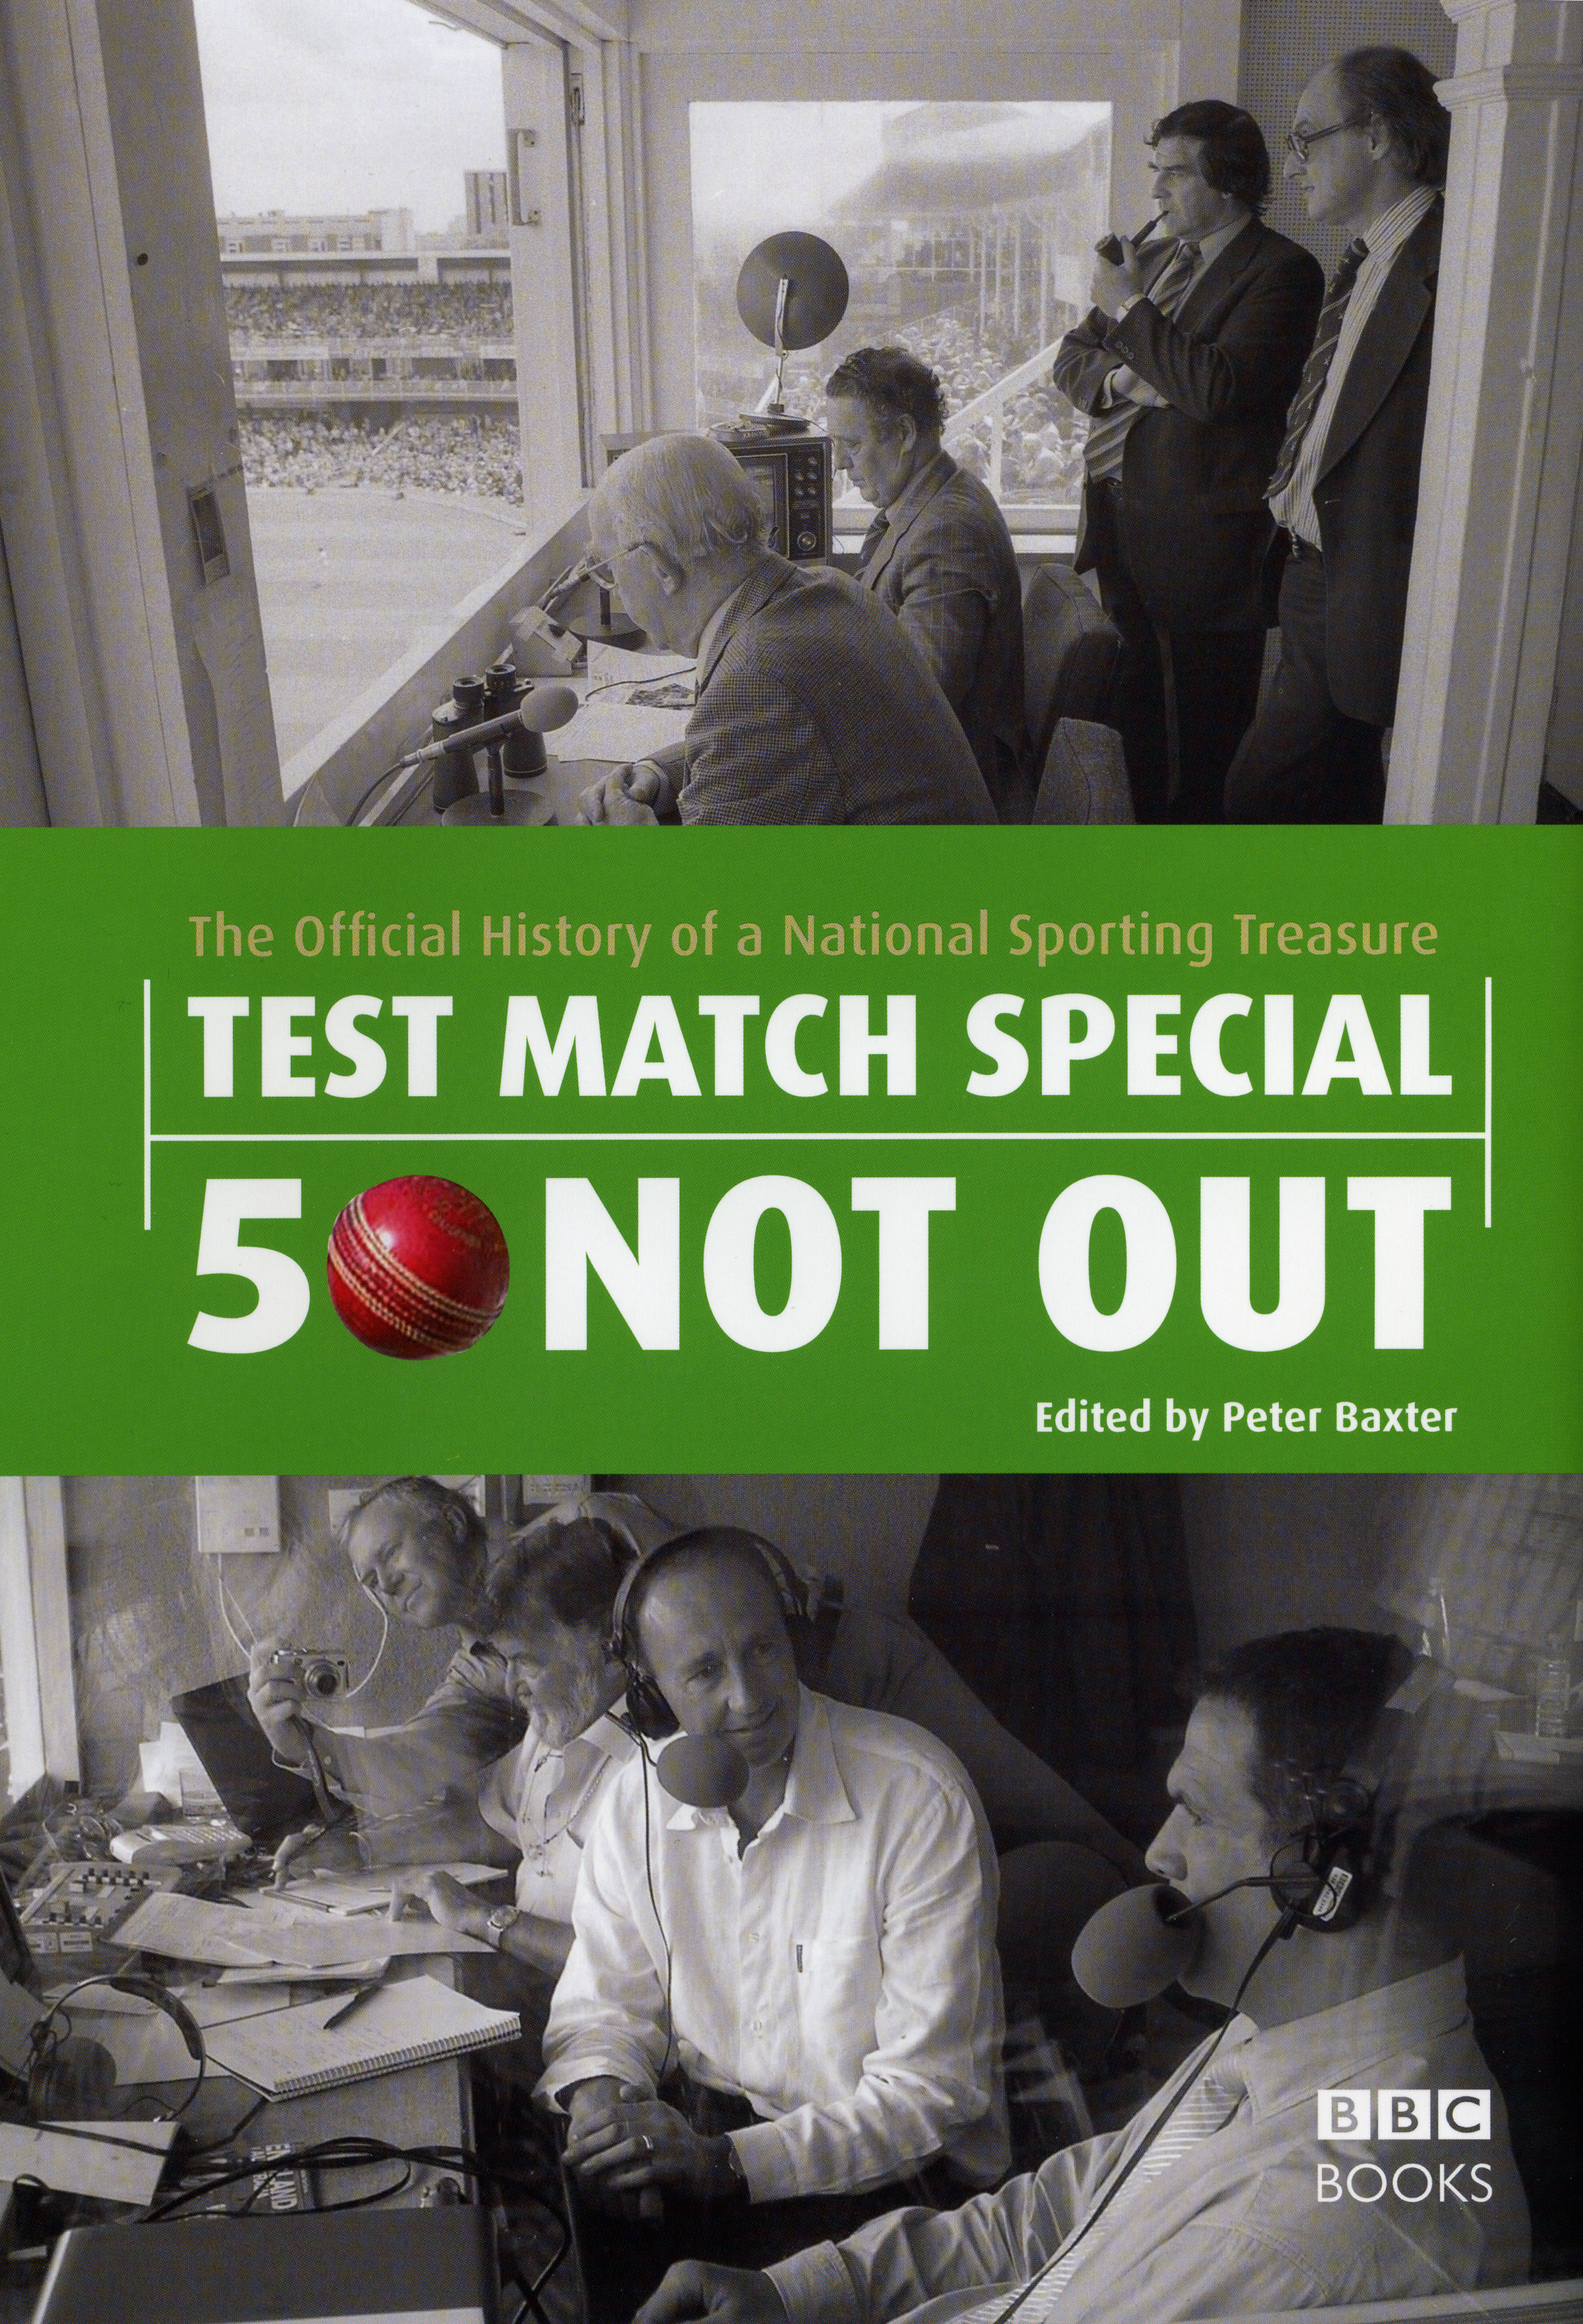 Test Match Special - 50 Not Out The Official History of a National Sporting Treasure